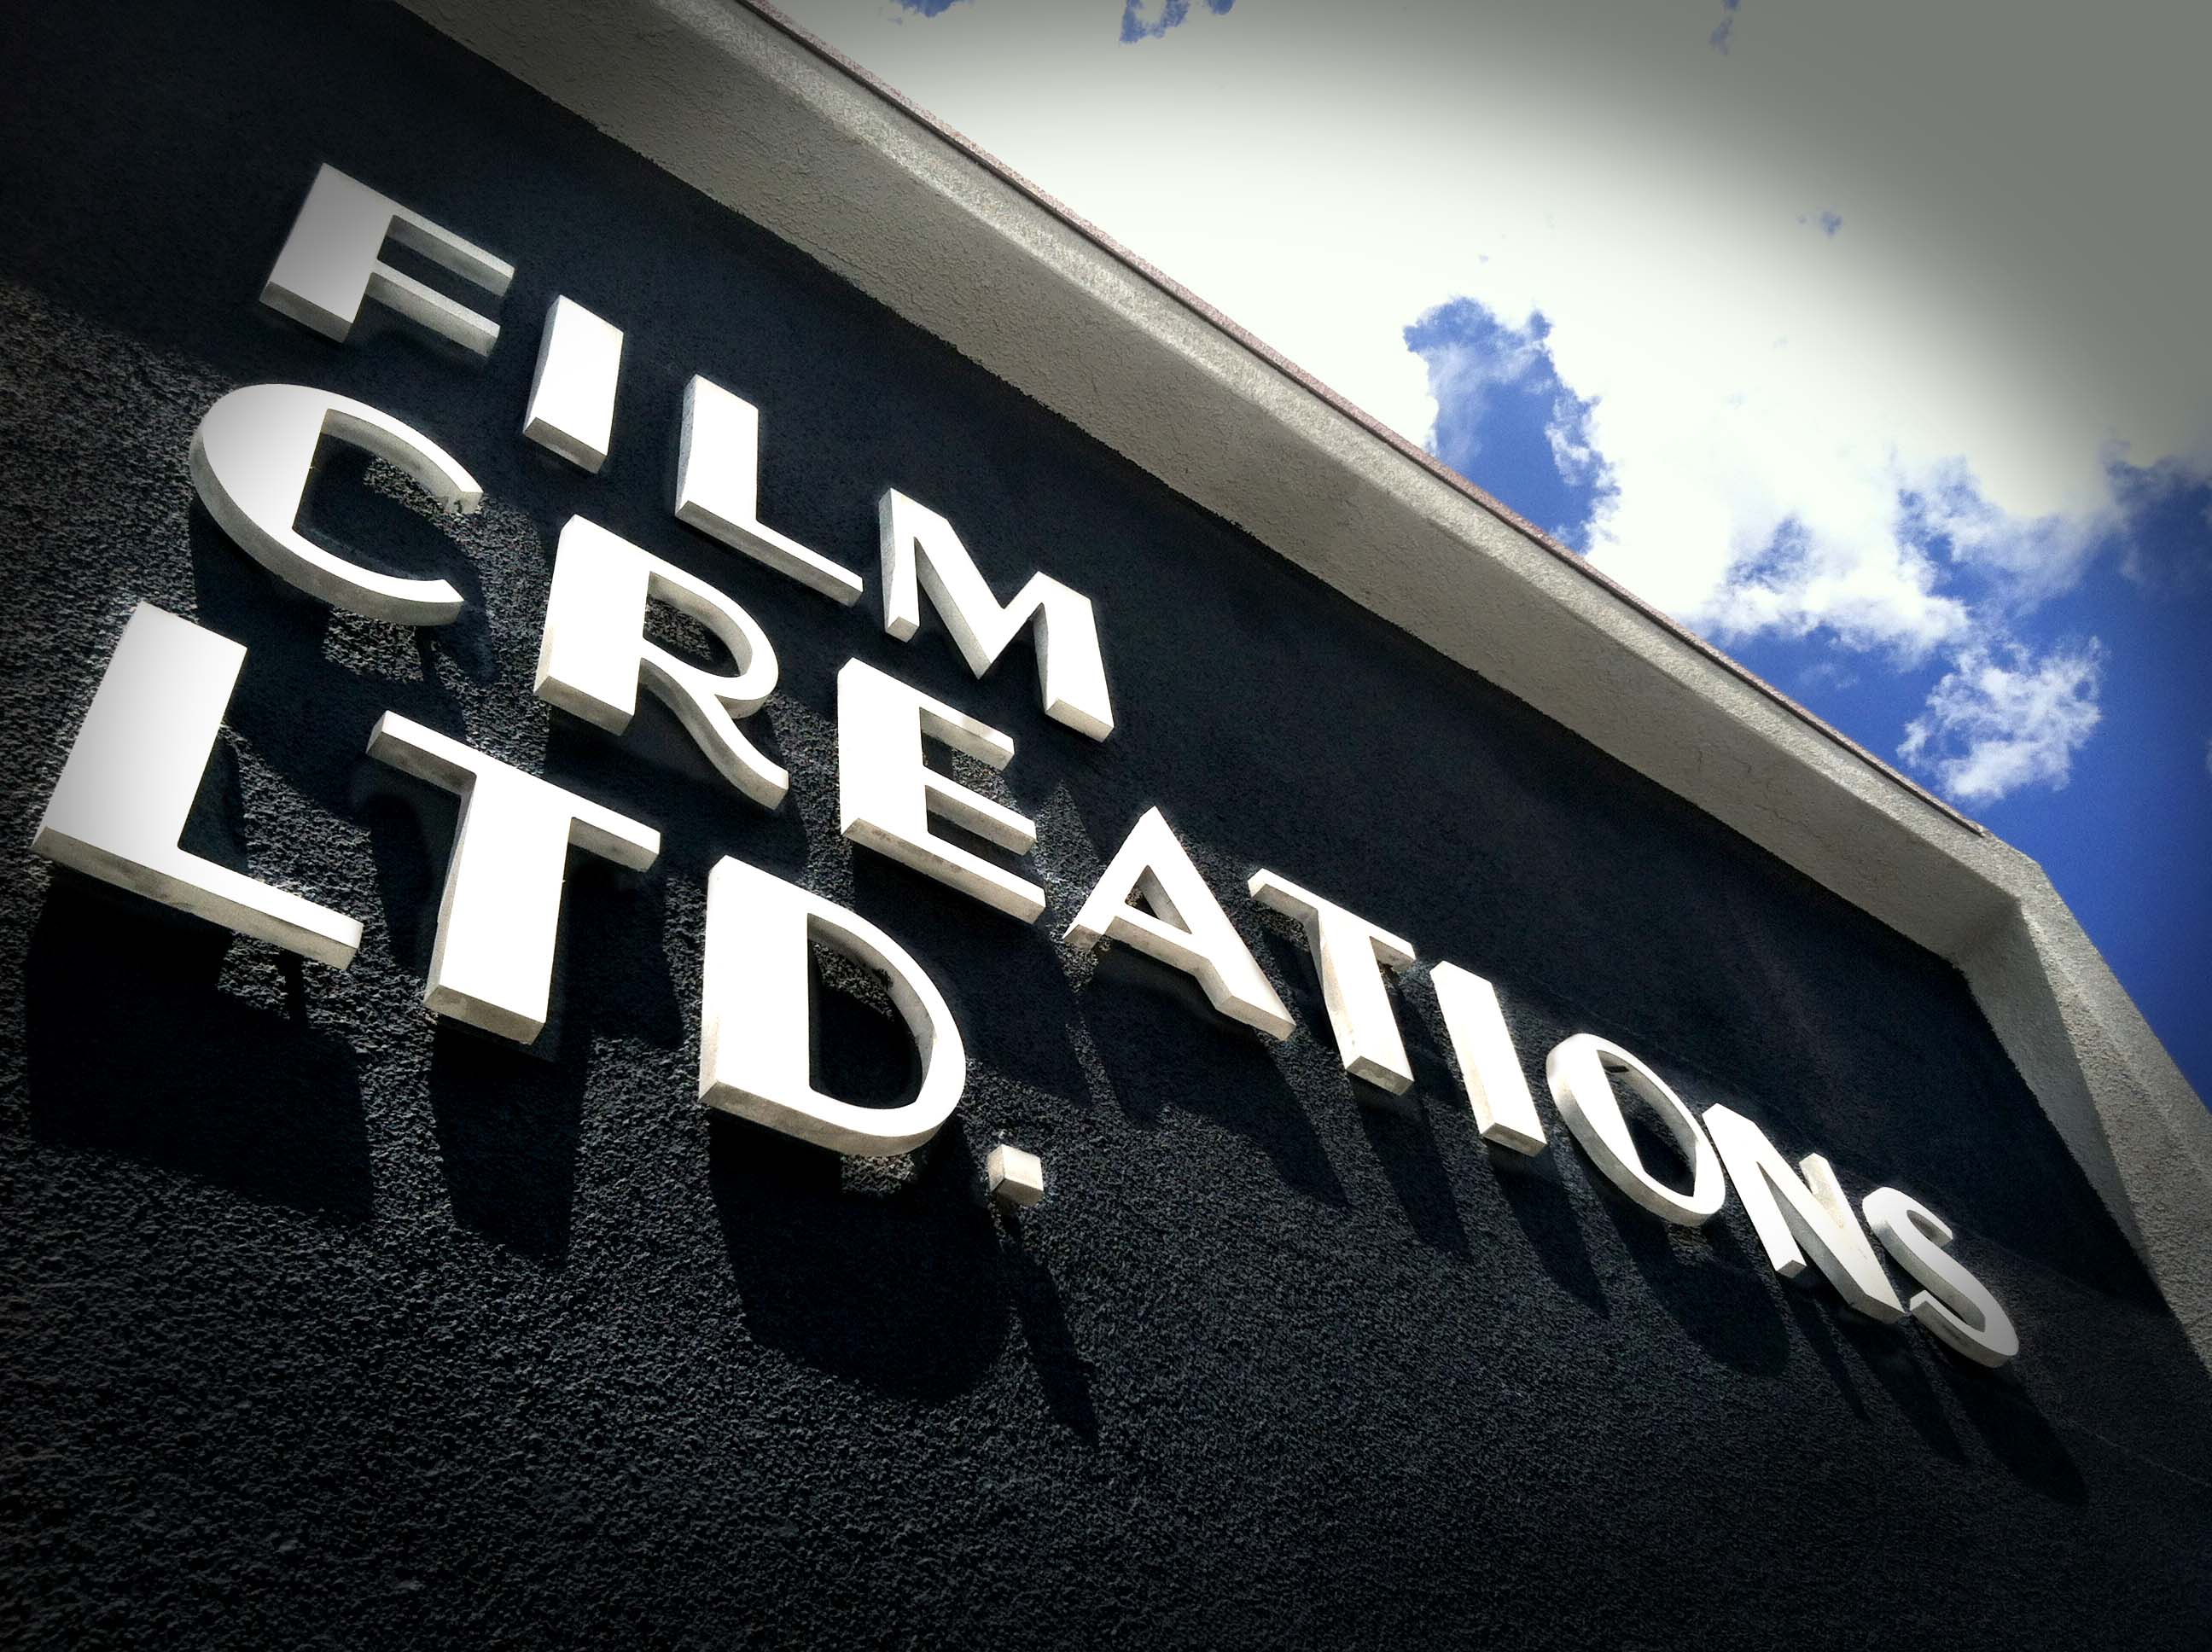 Film Creations Entrance